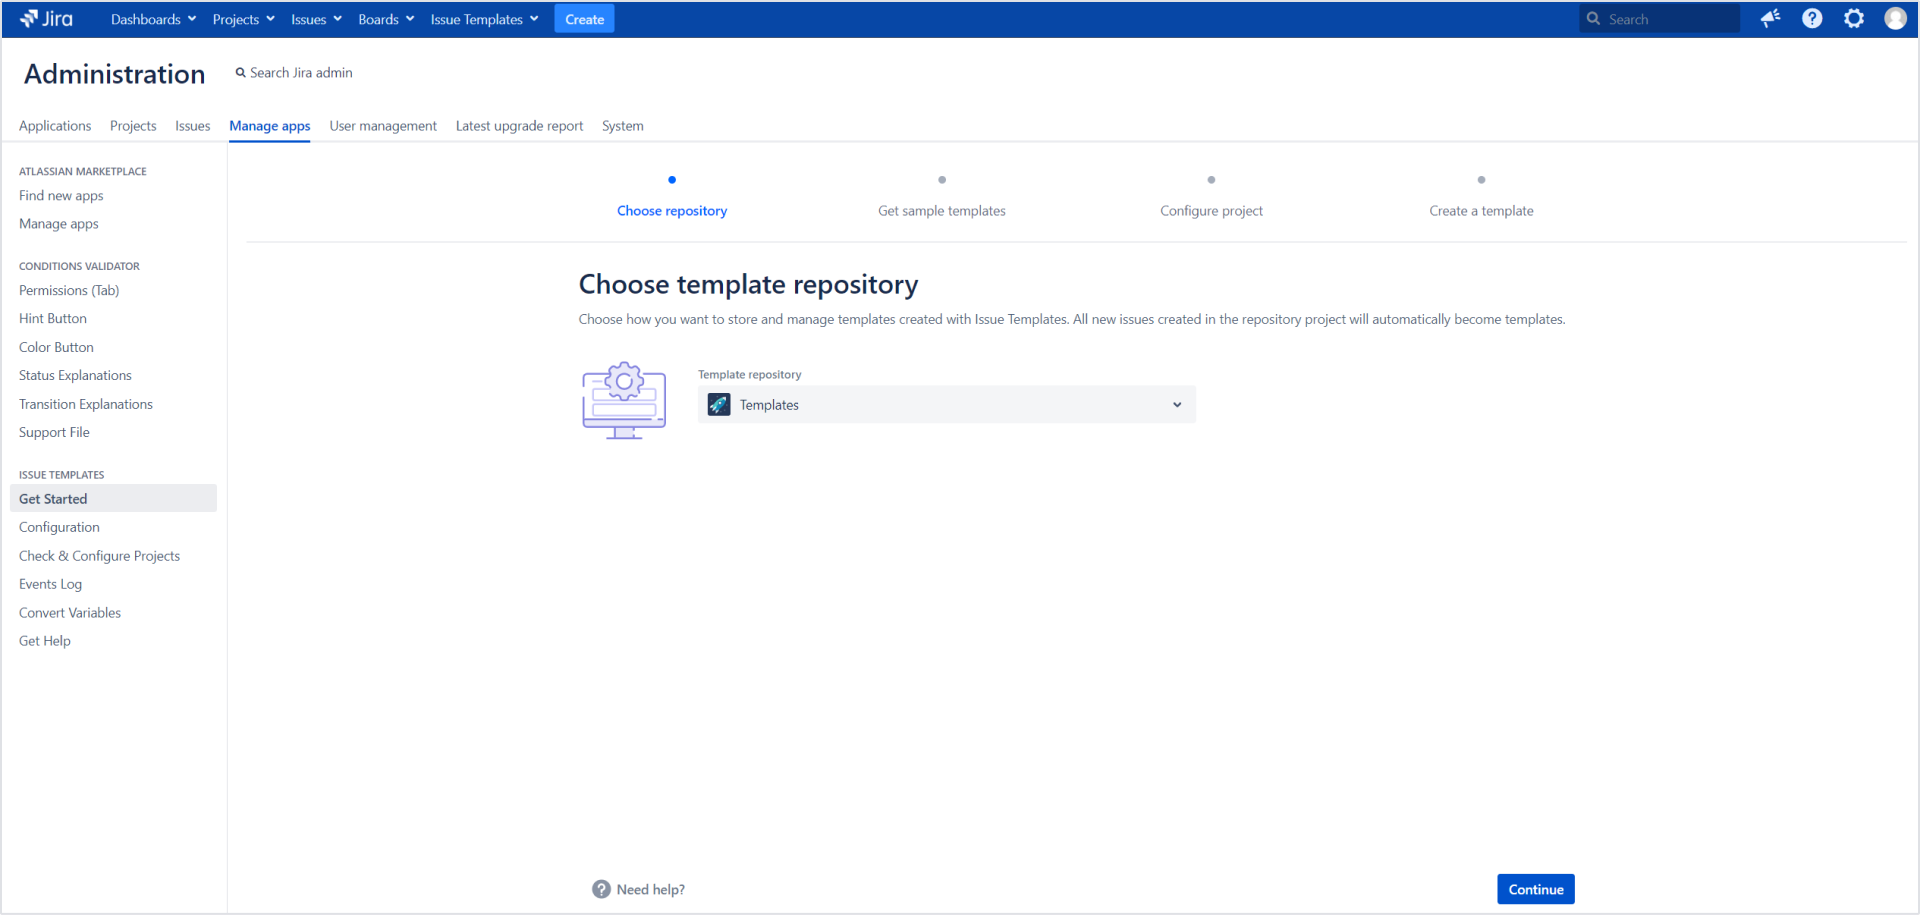 Issue Templates for Jira - Choose template repository